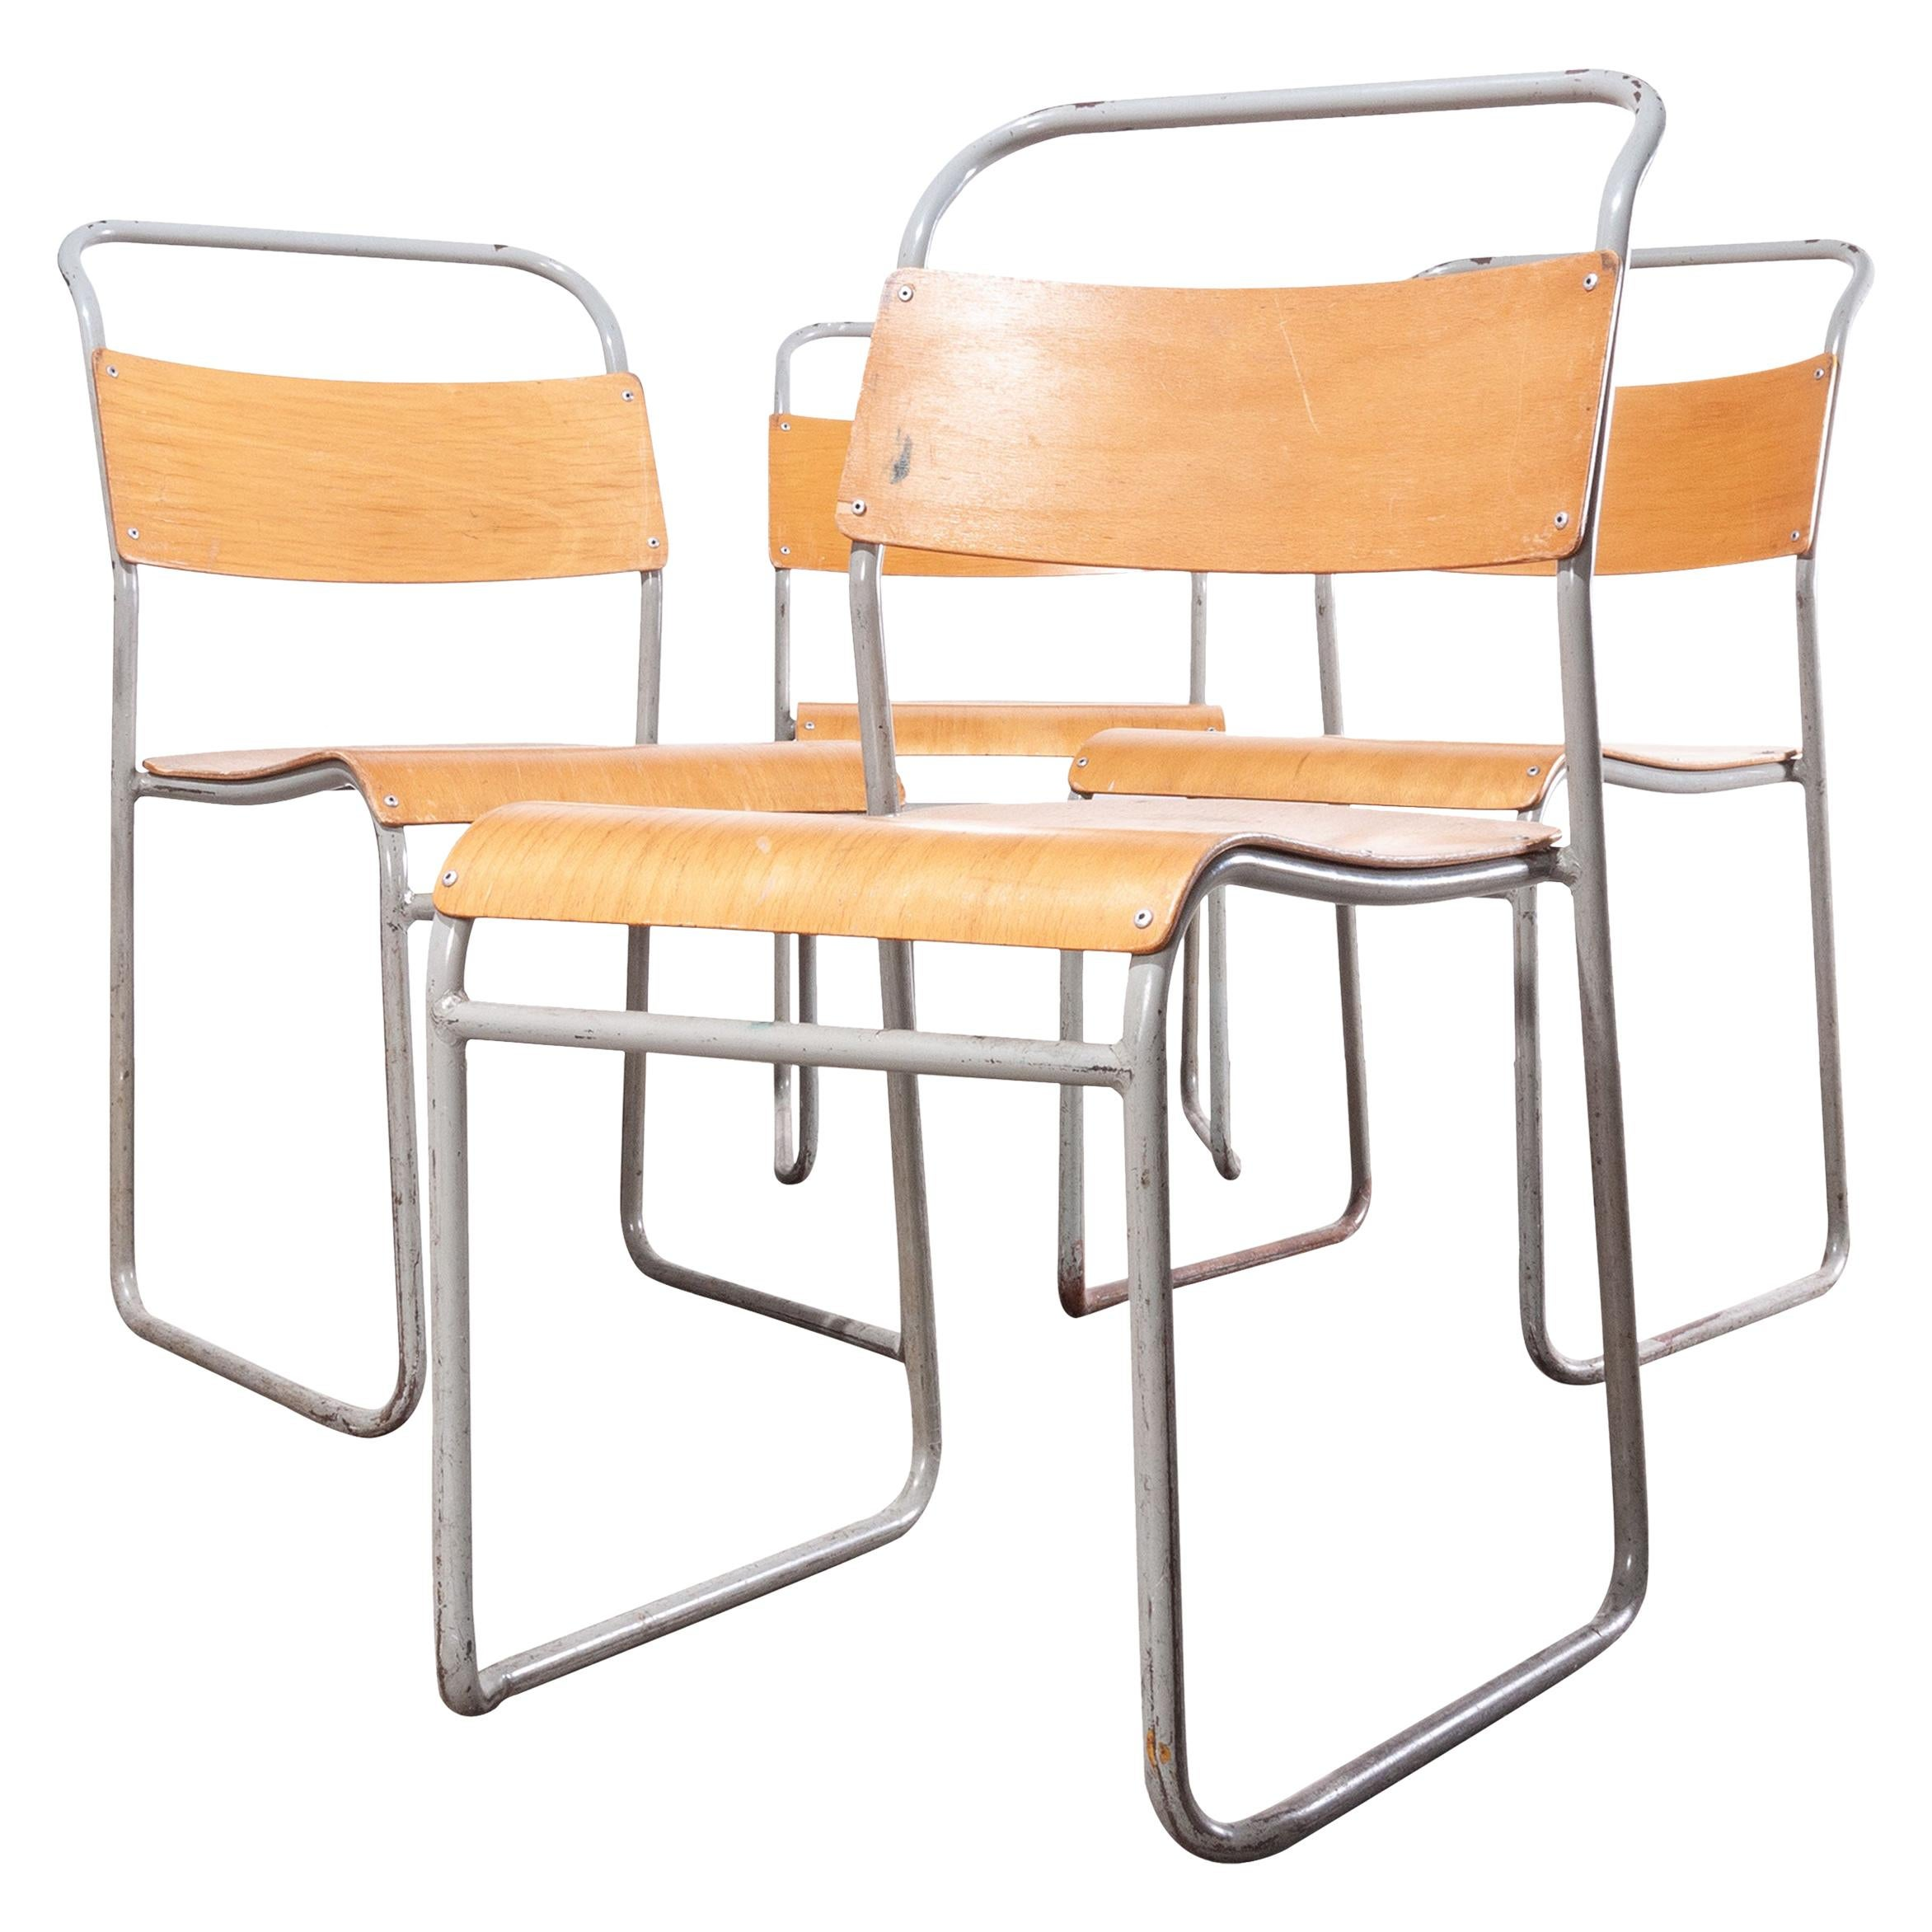 1950s Remploy Tubular Metal Stacking Dining Chairs, Set Of Four Grey Frame